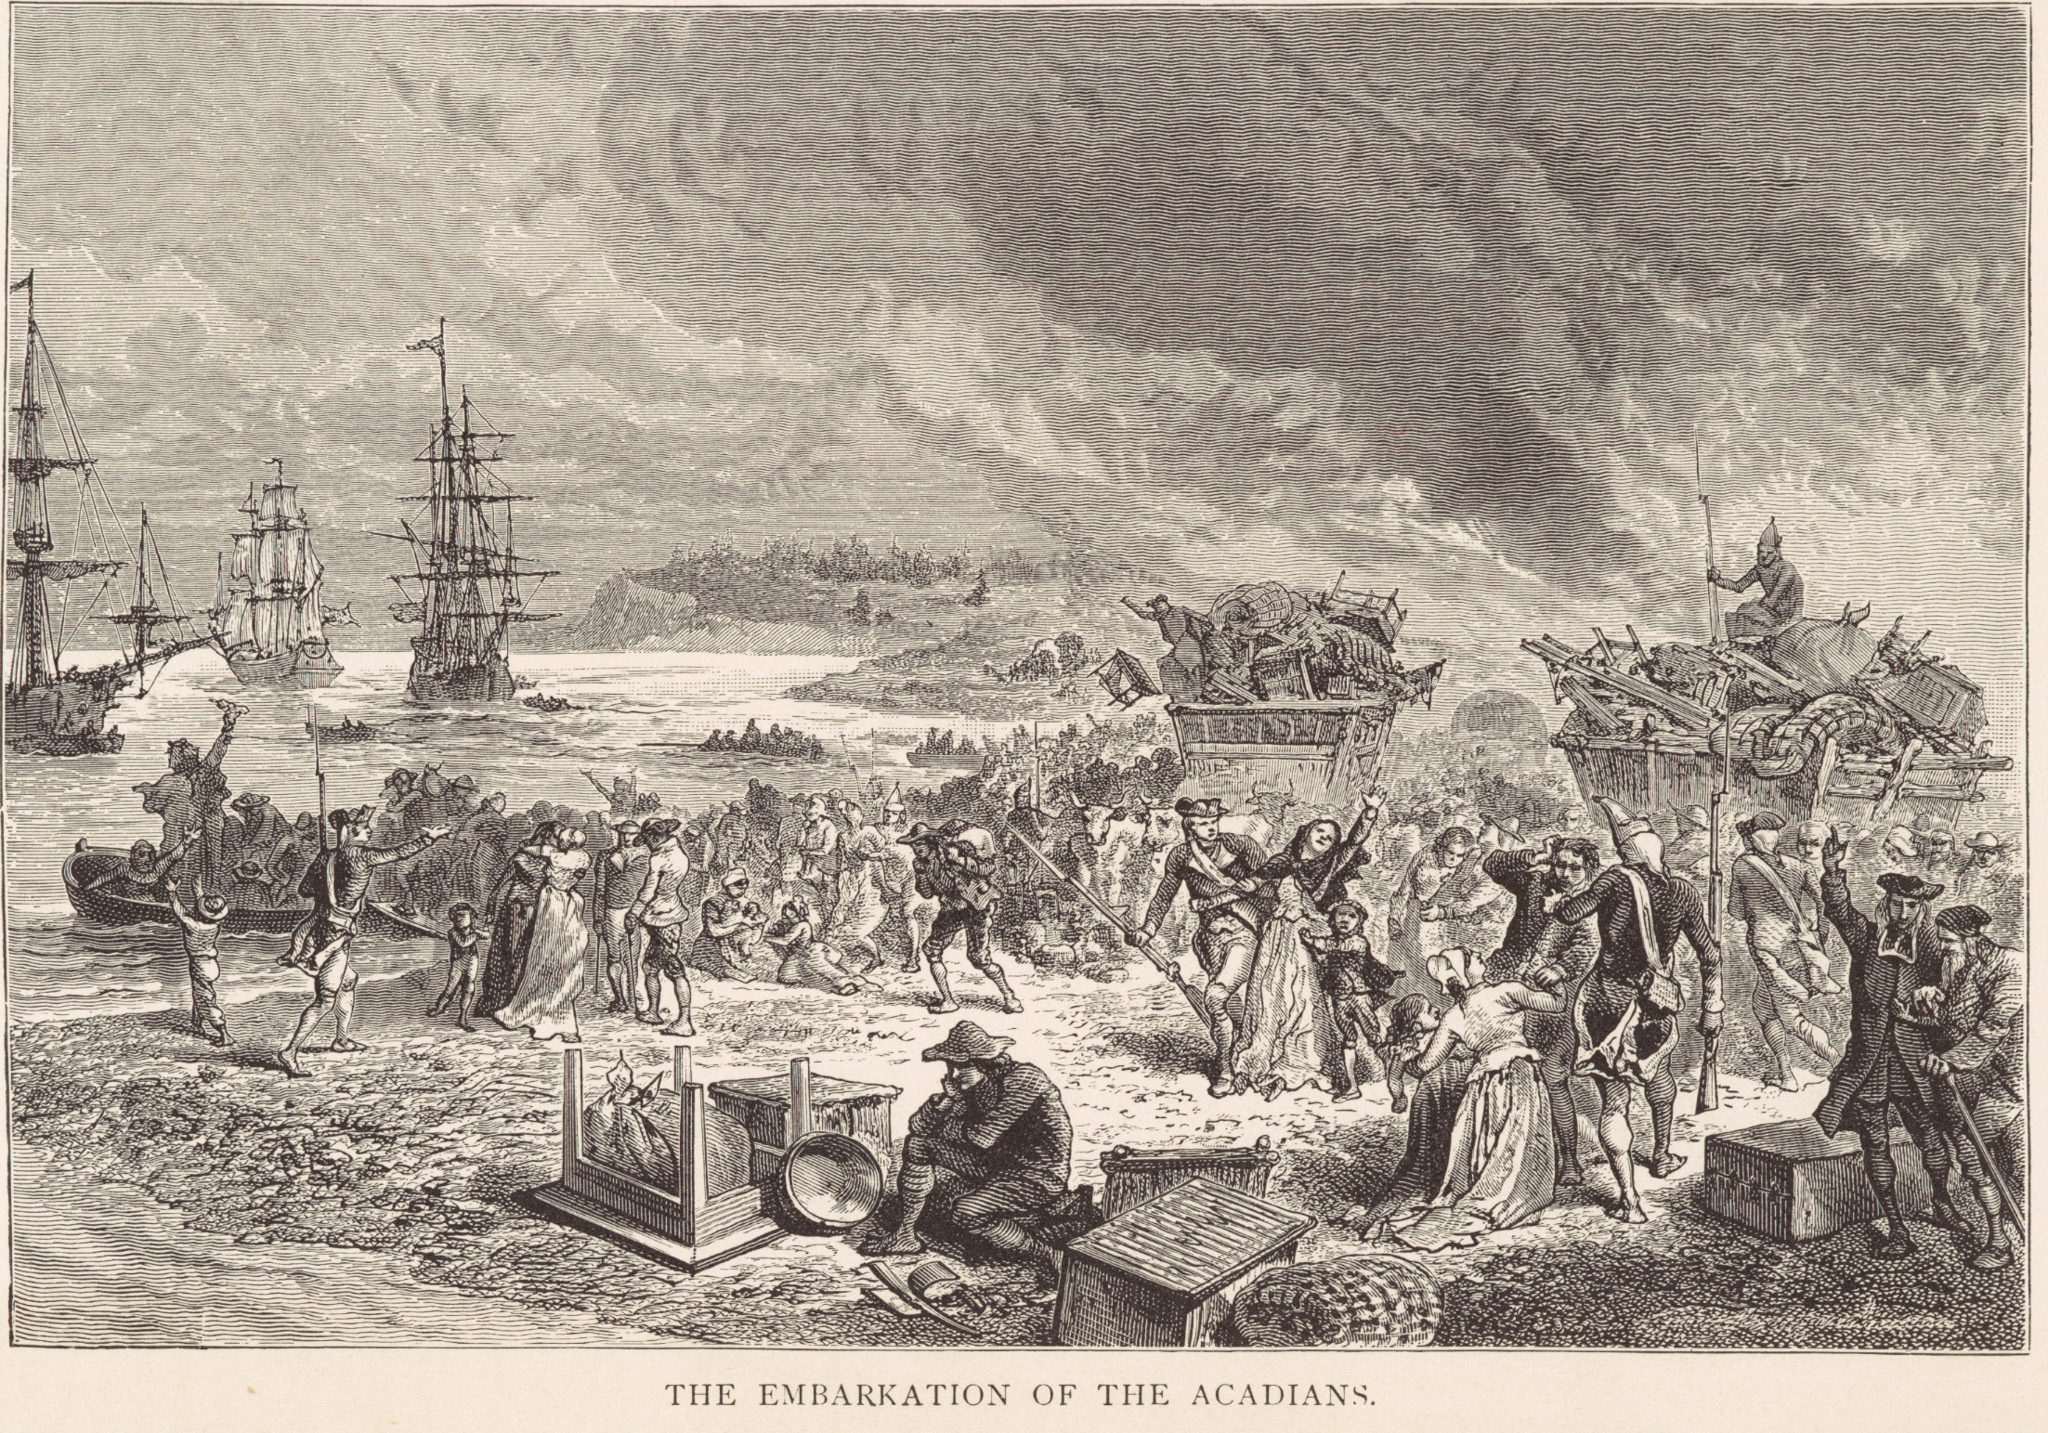 The Embarkation of the Acadians by Emile Bayard, 1881